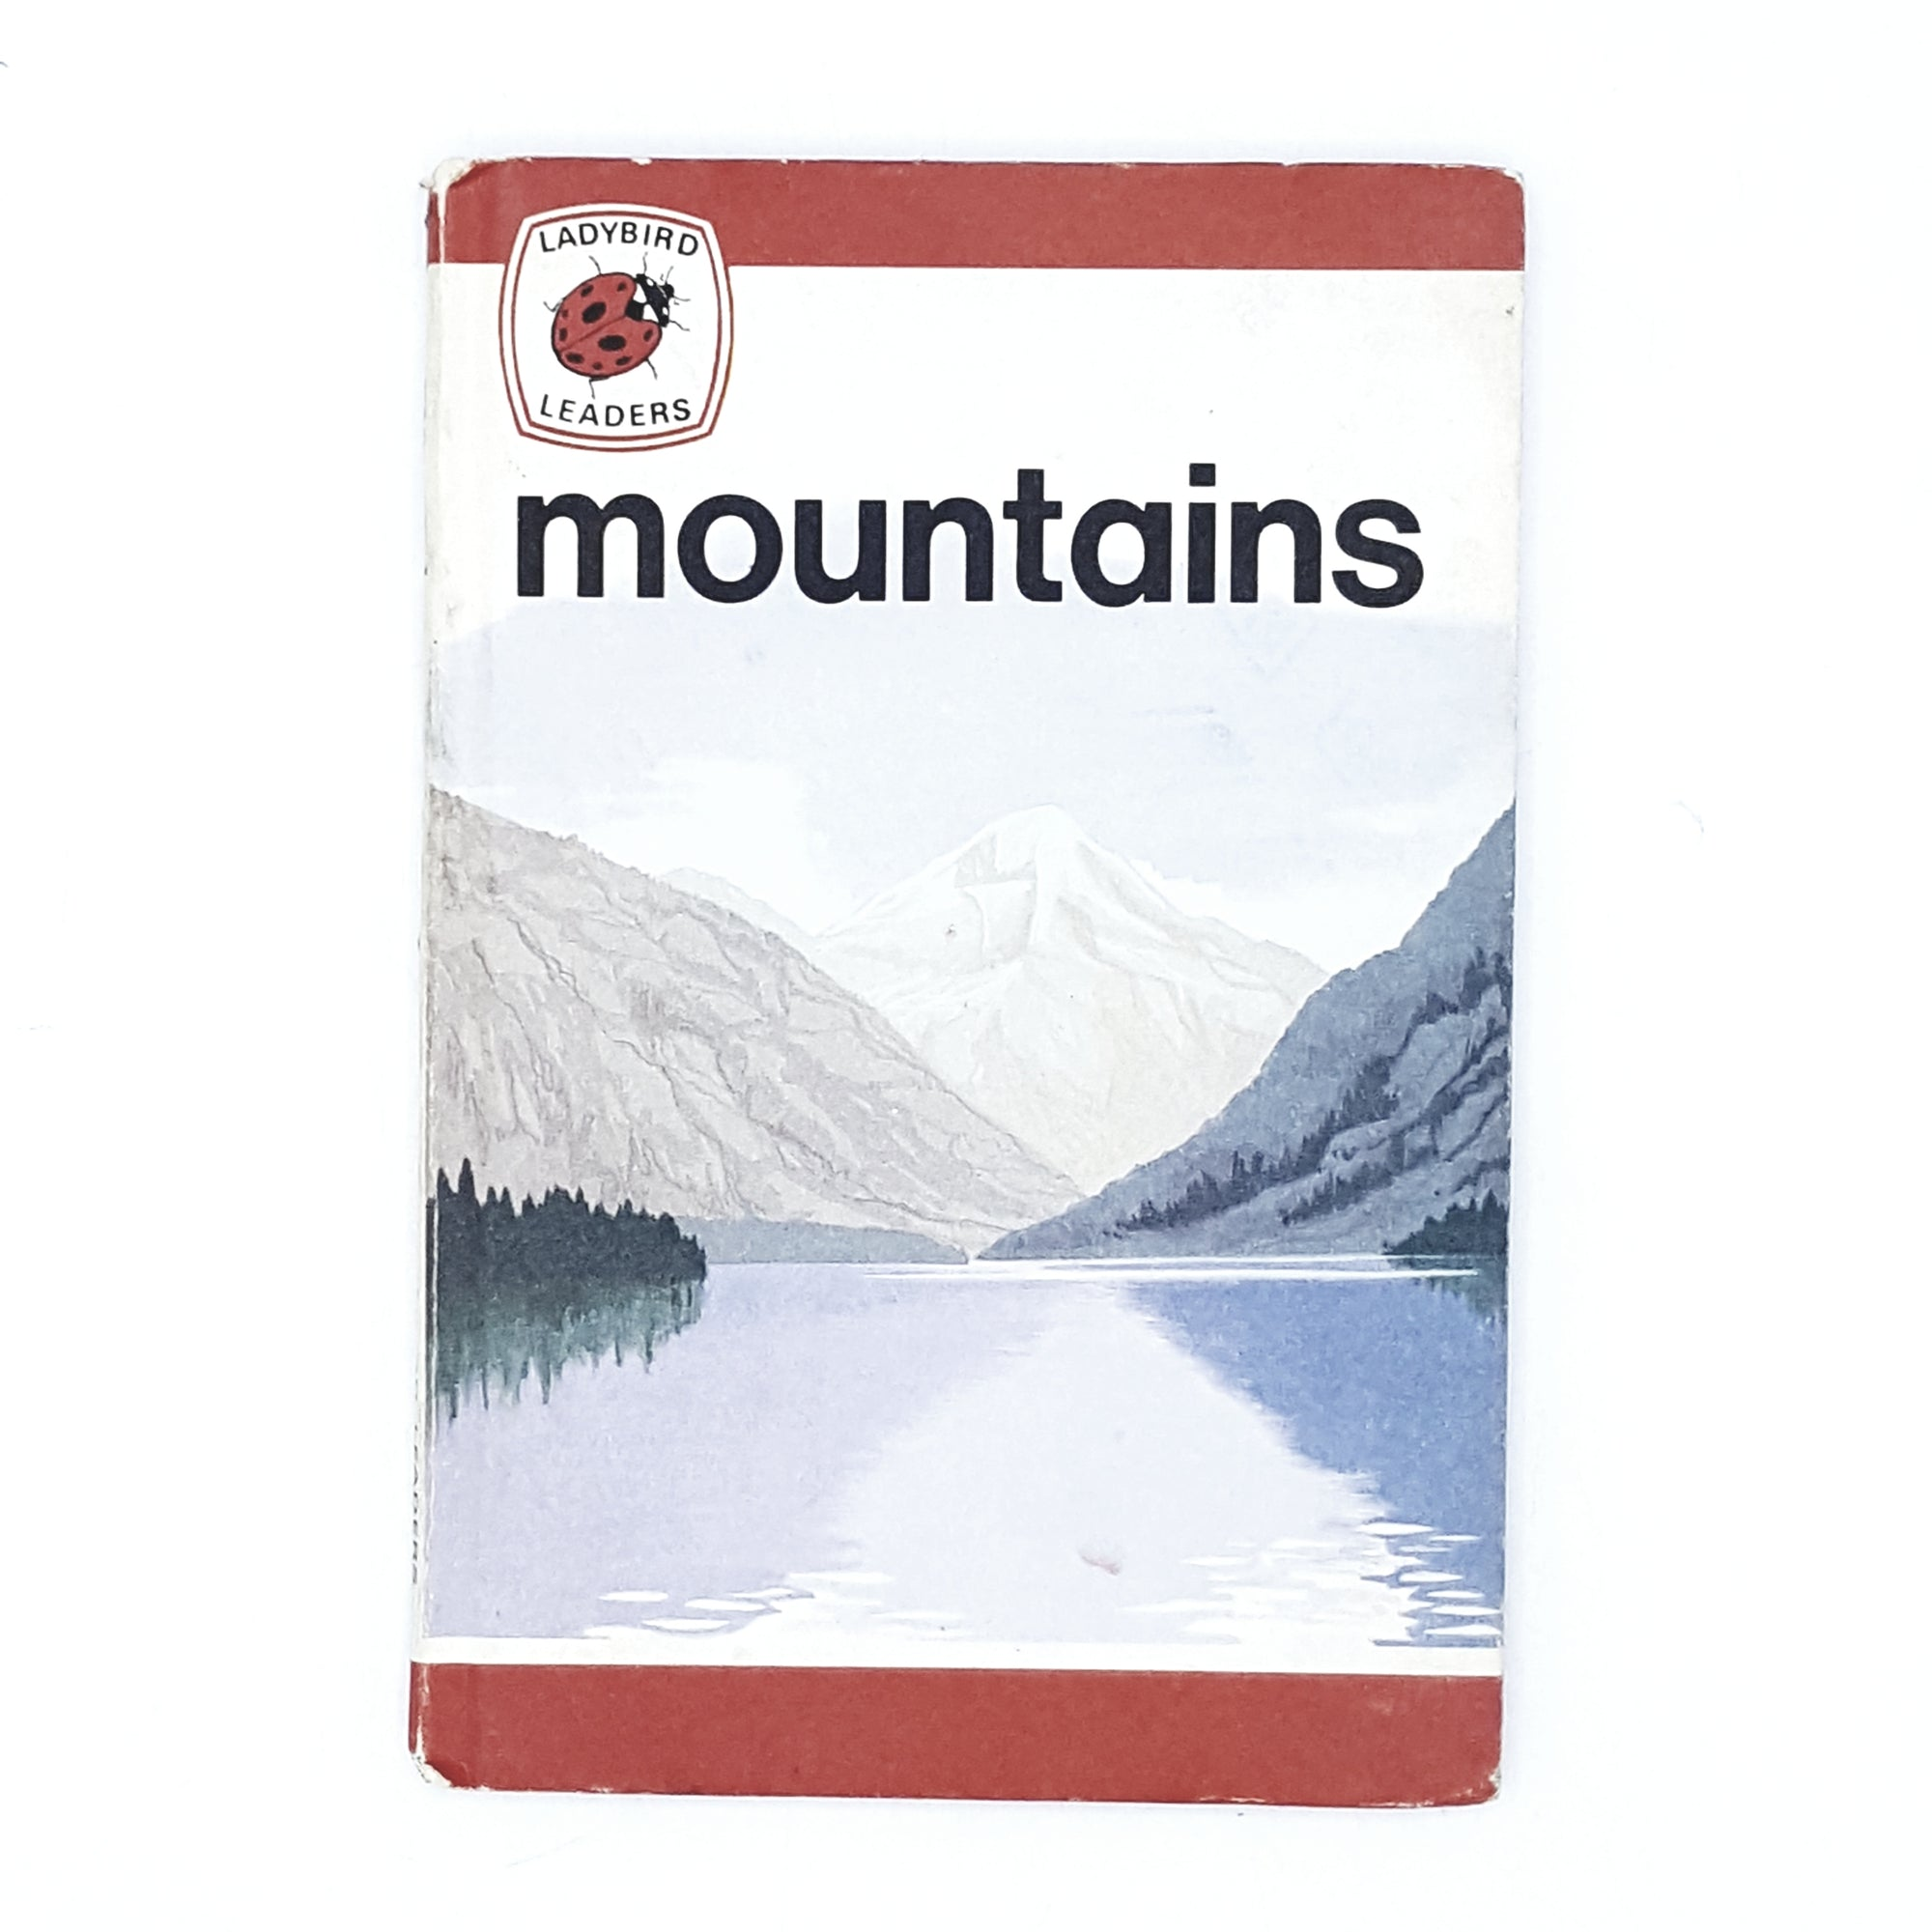 Ladybird: Mountains 1977